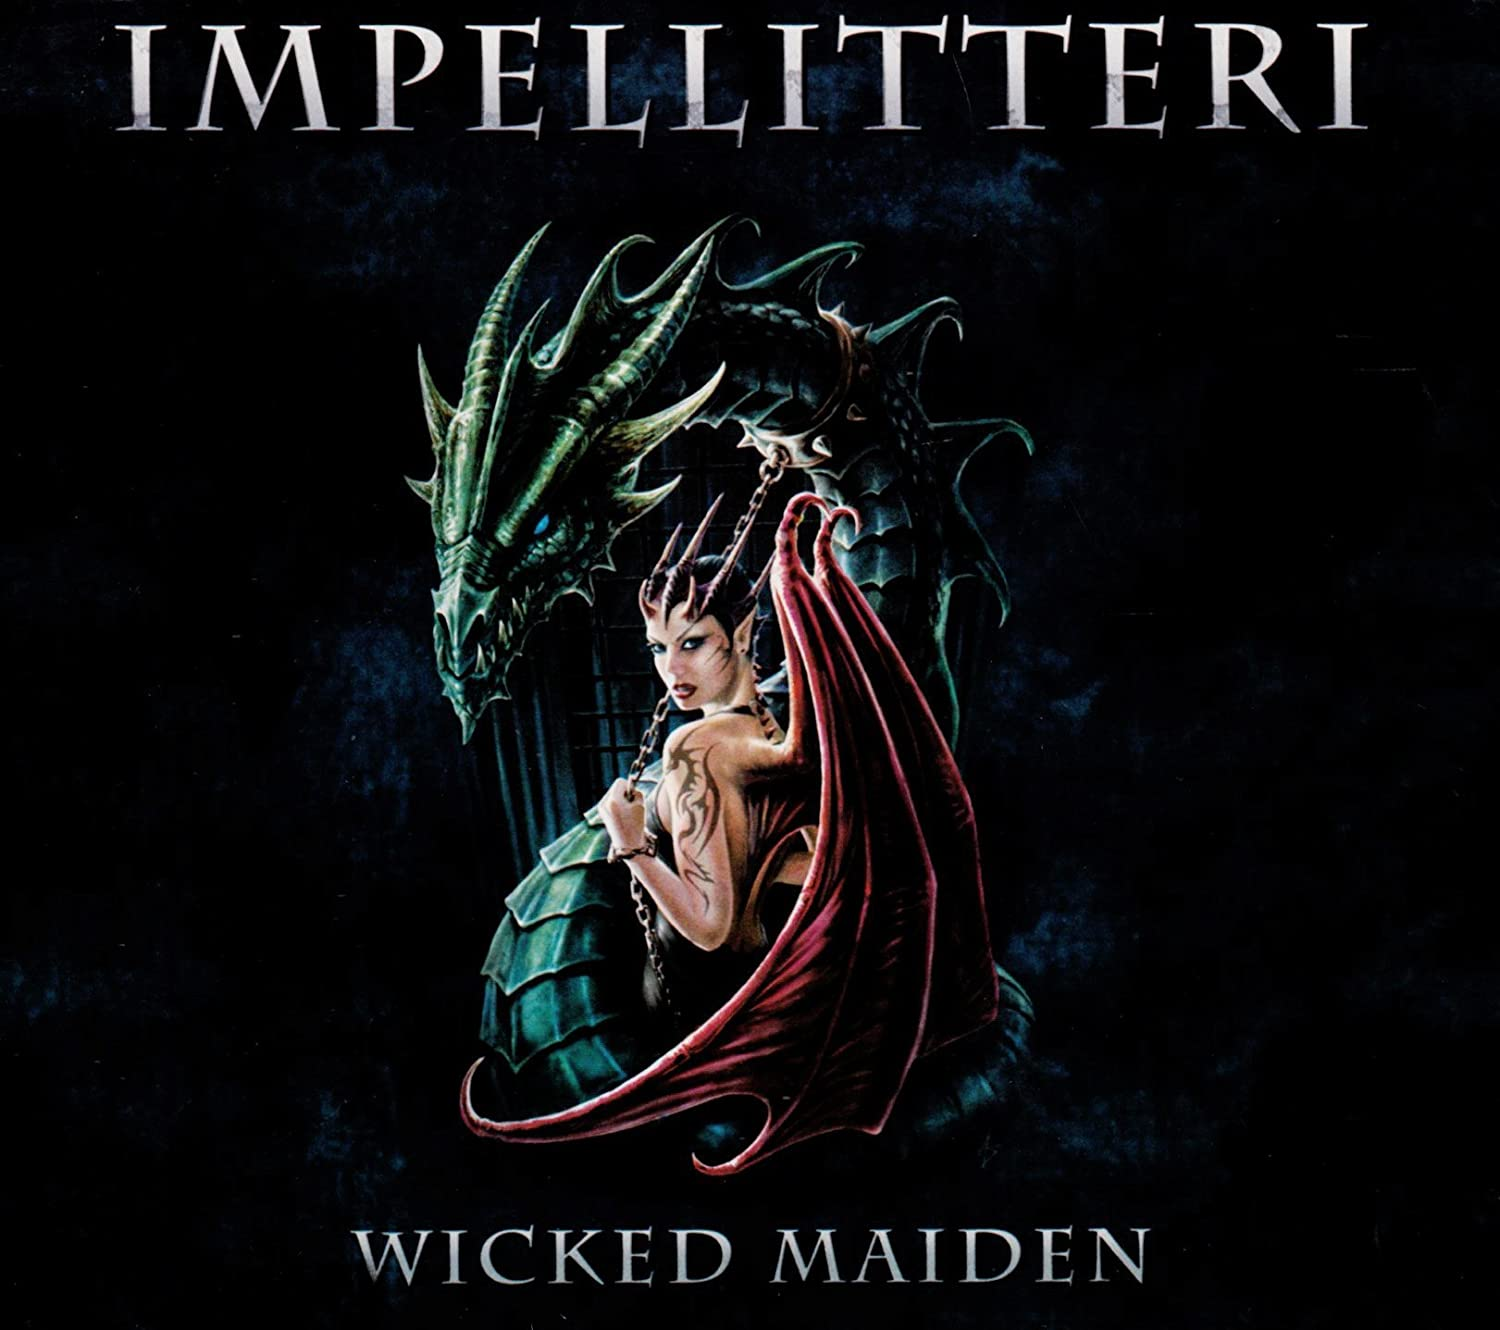 Wicked Maiden                                                                                                                                                                                                                                                                                                                                                                                                <span class=